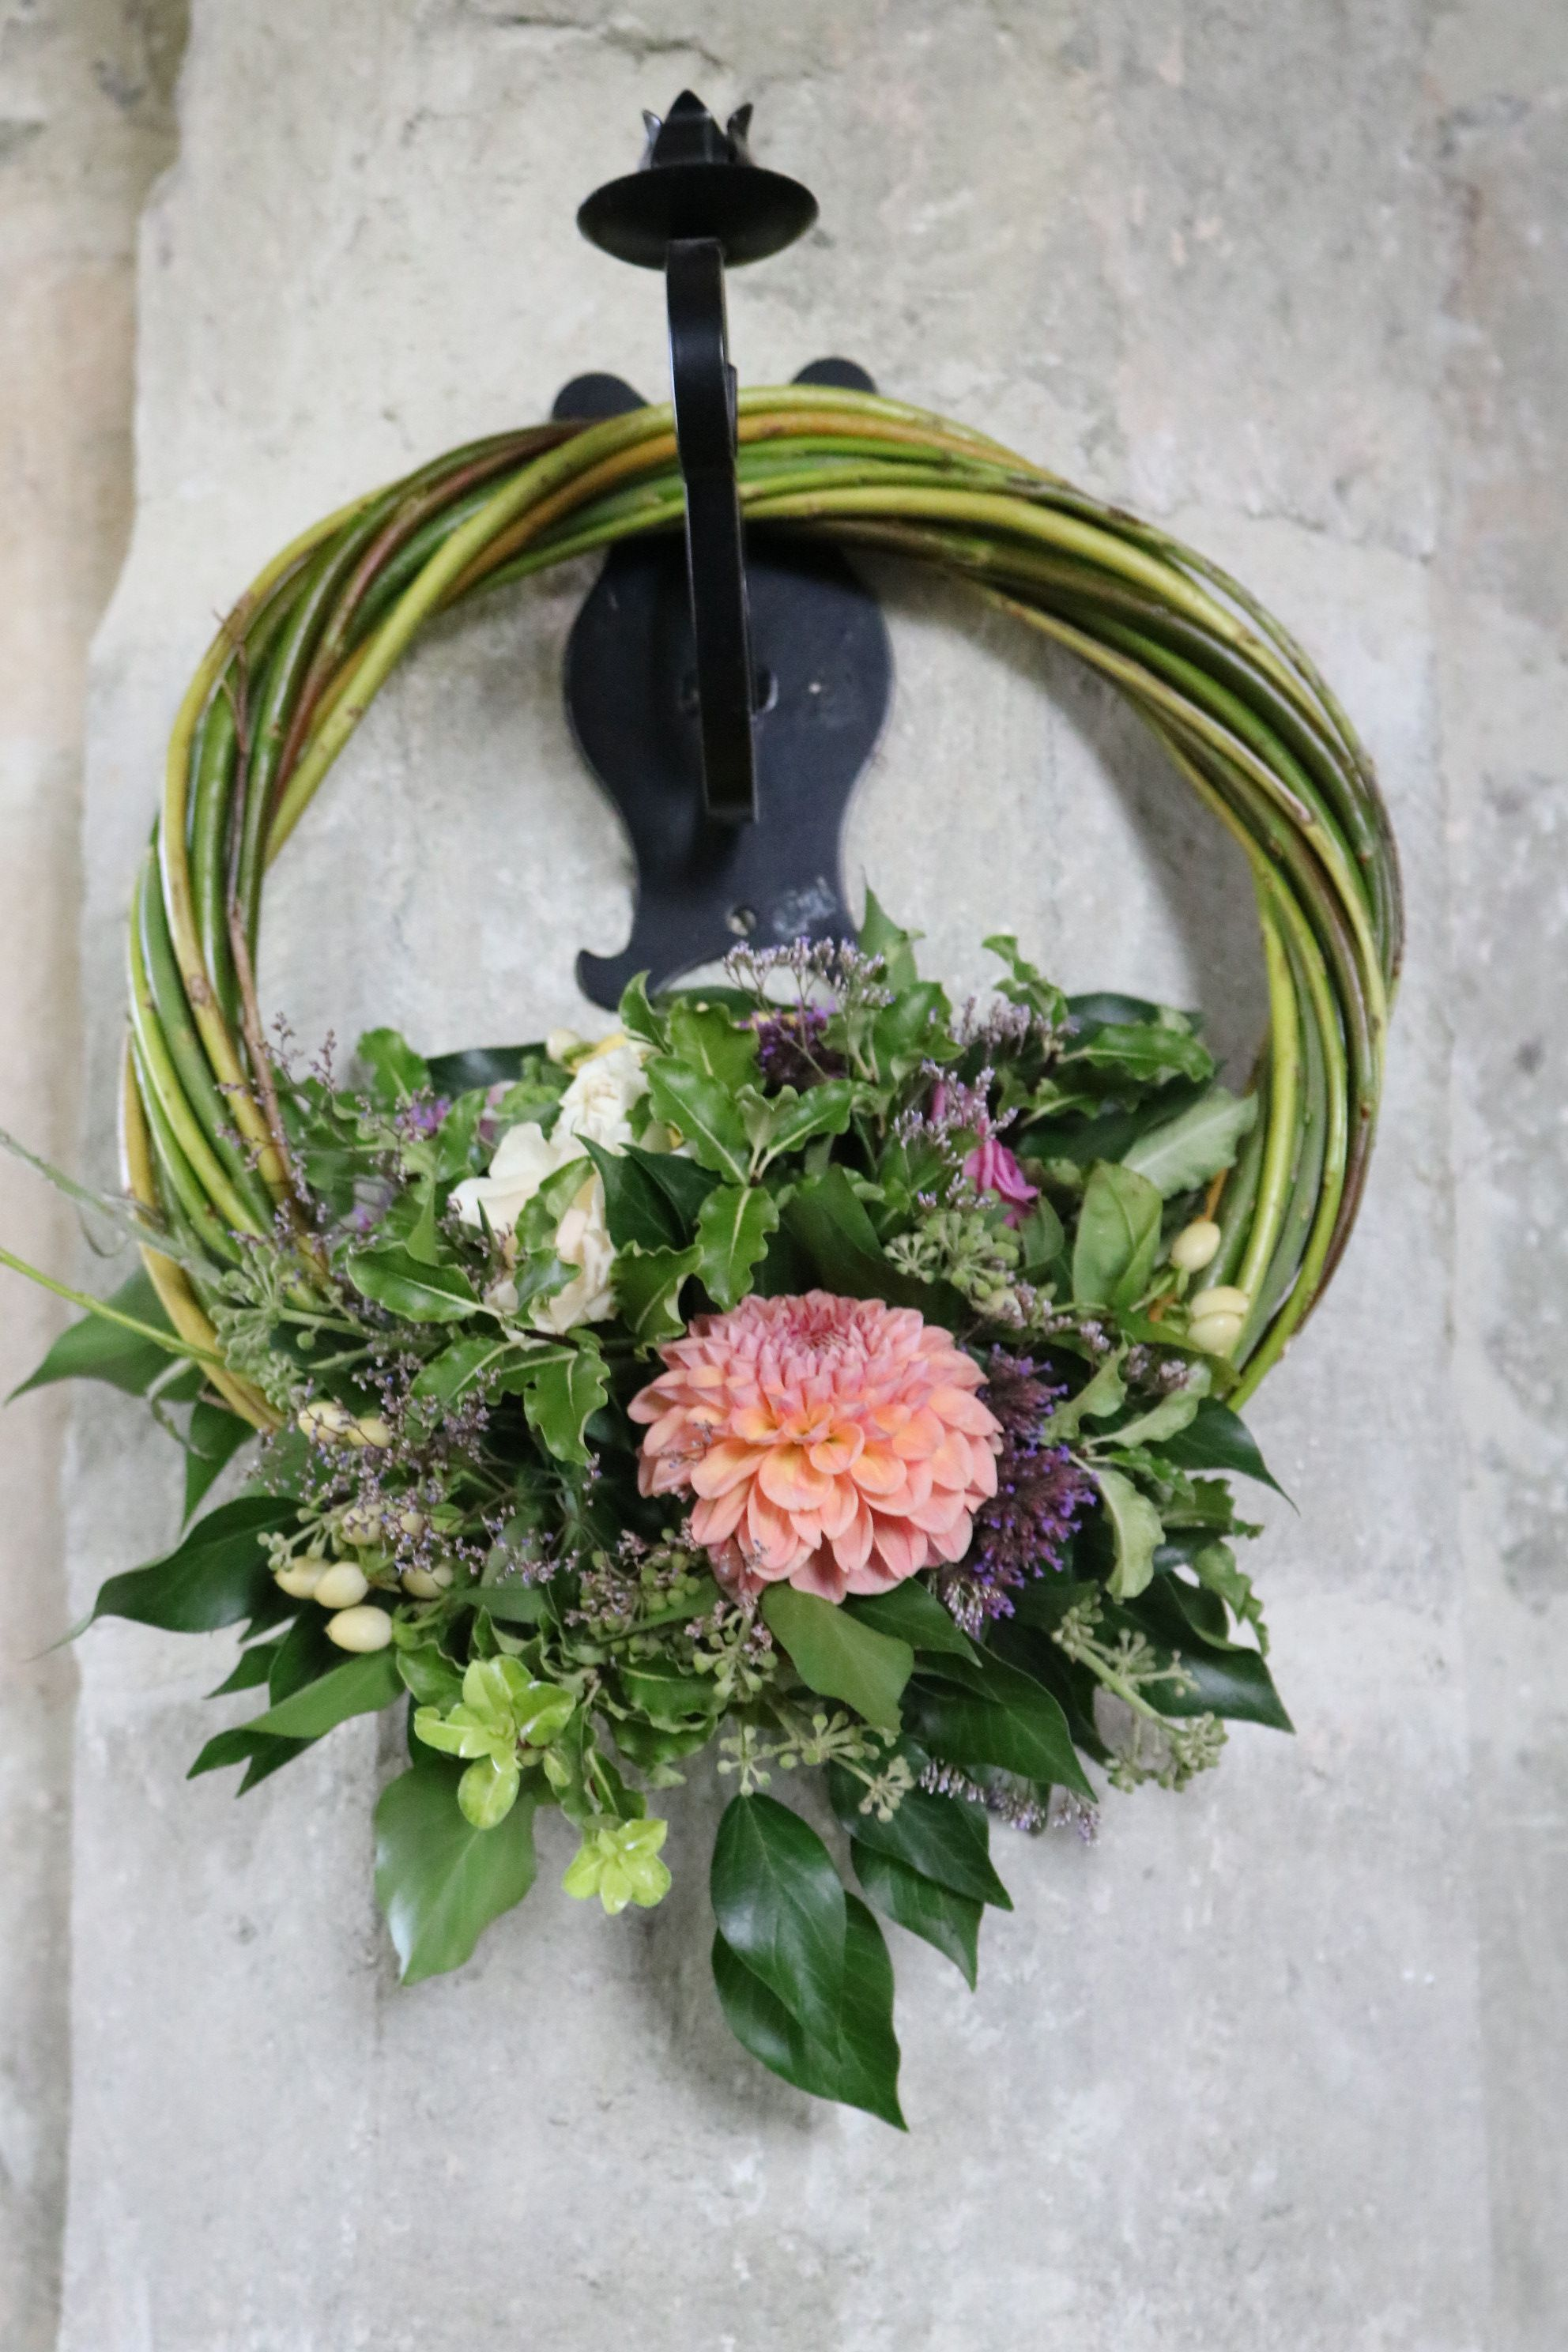 Fresh Somerset willow wreath dressed with flowers and